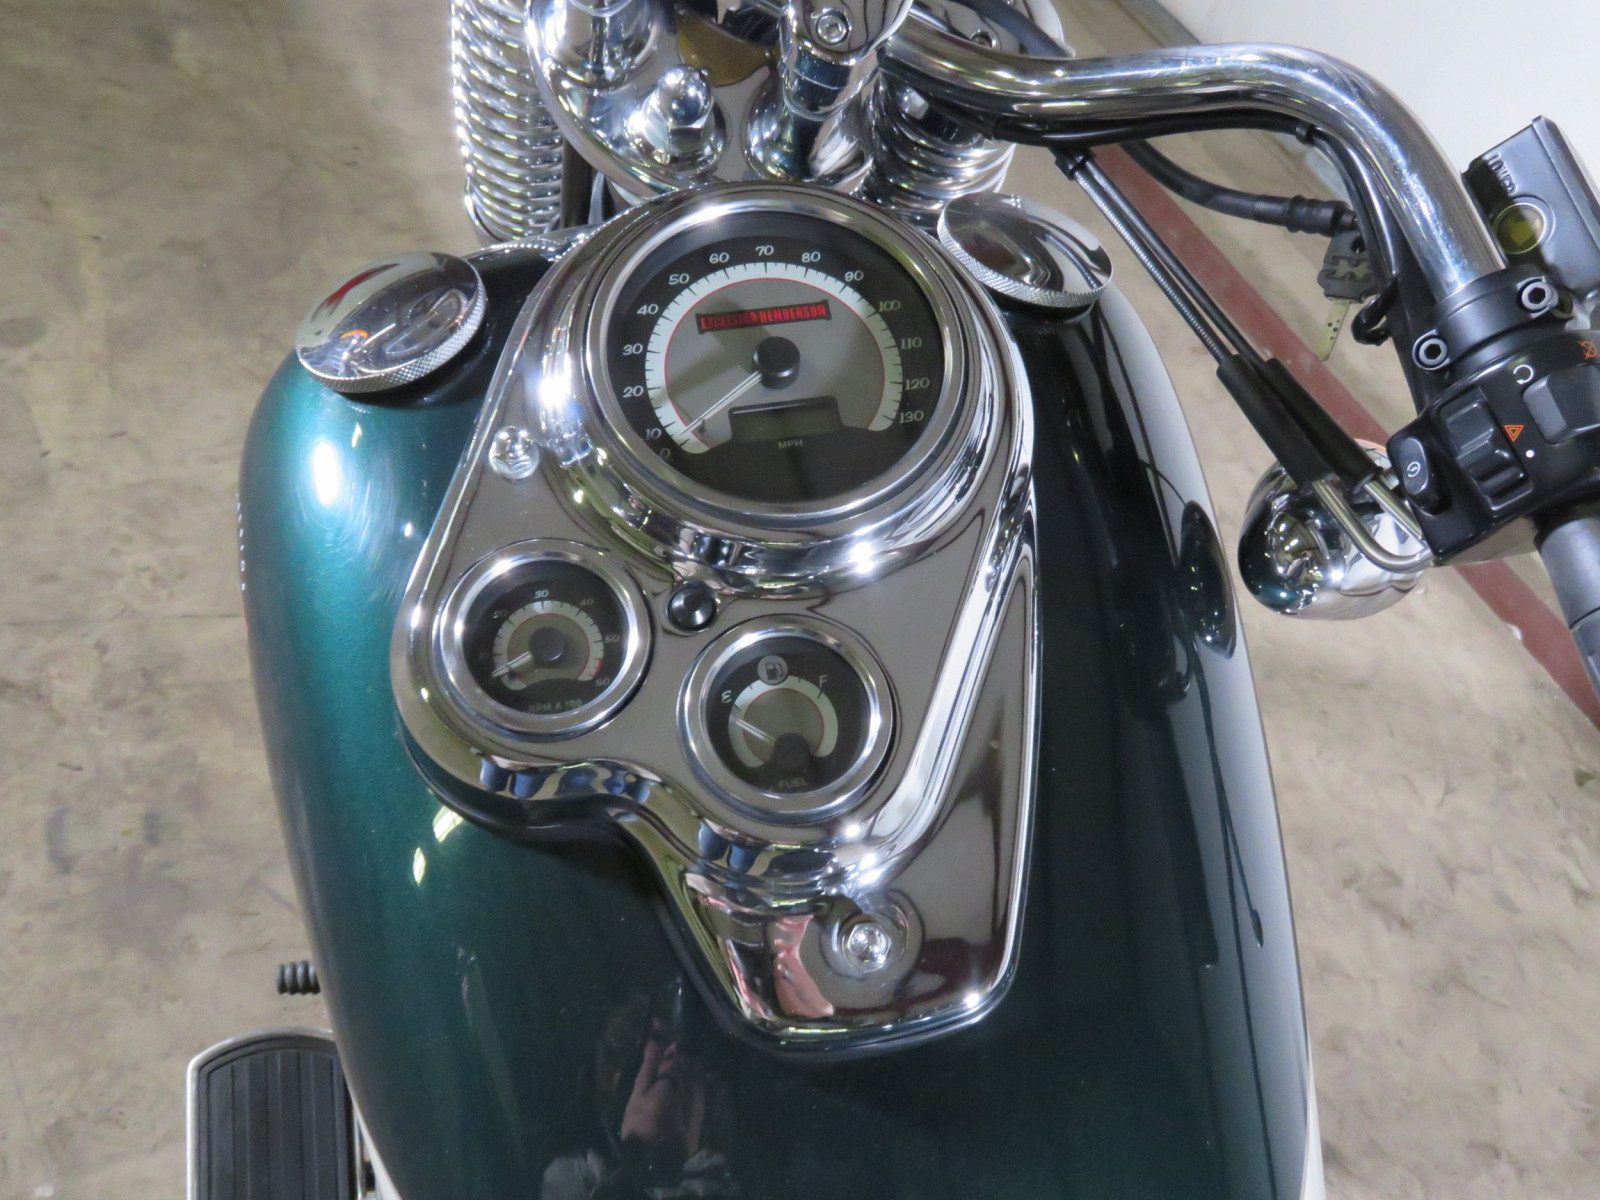 1999 Excelsior Henderson Super X Motorcycle - Image 3